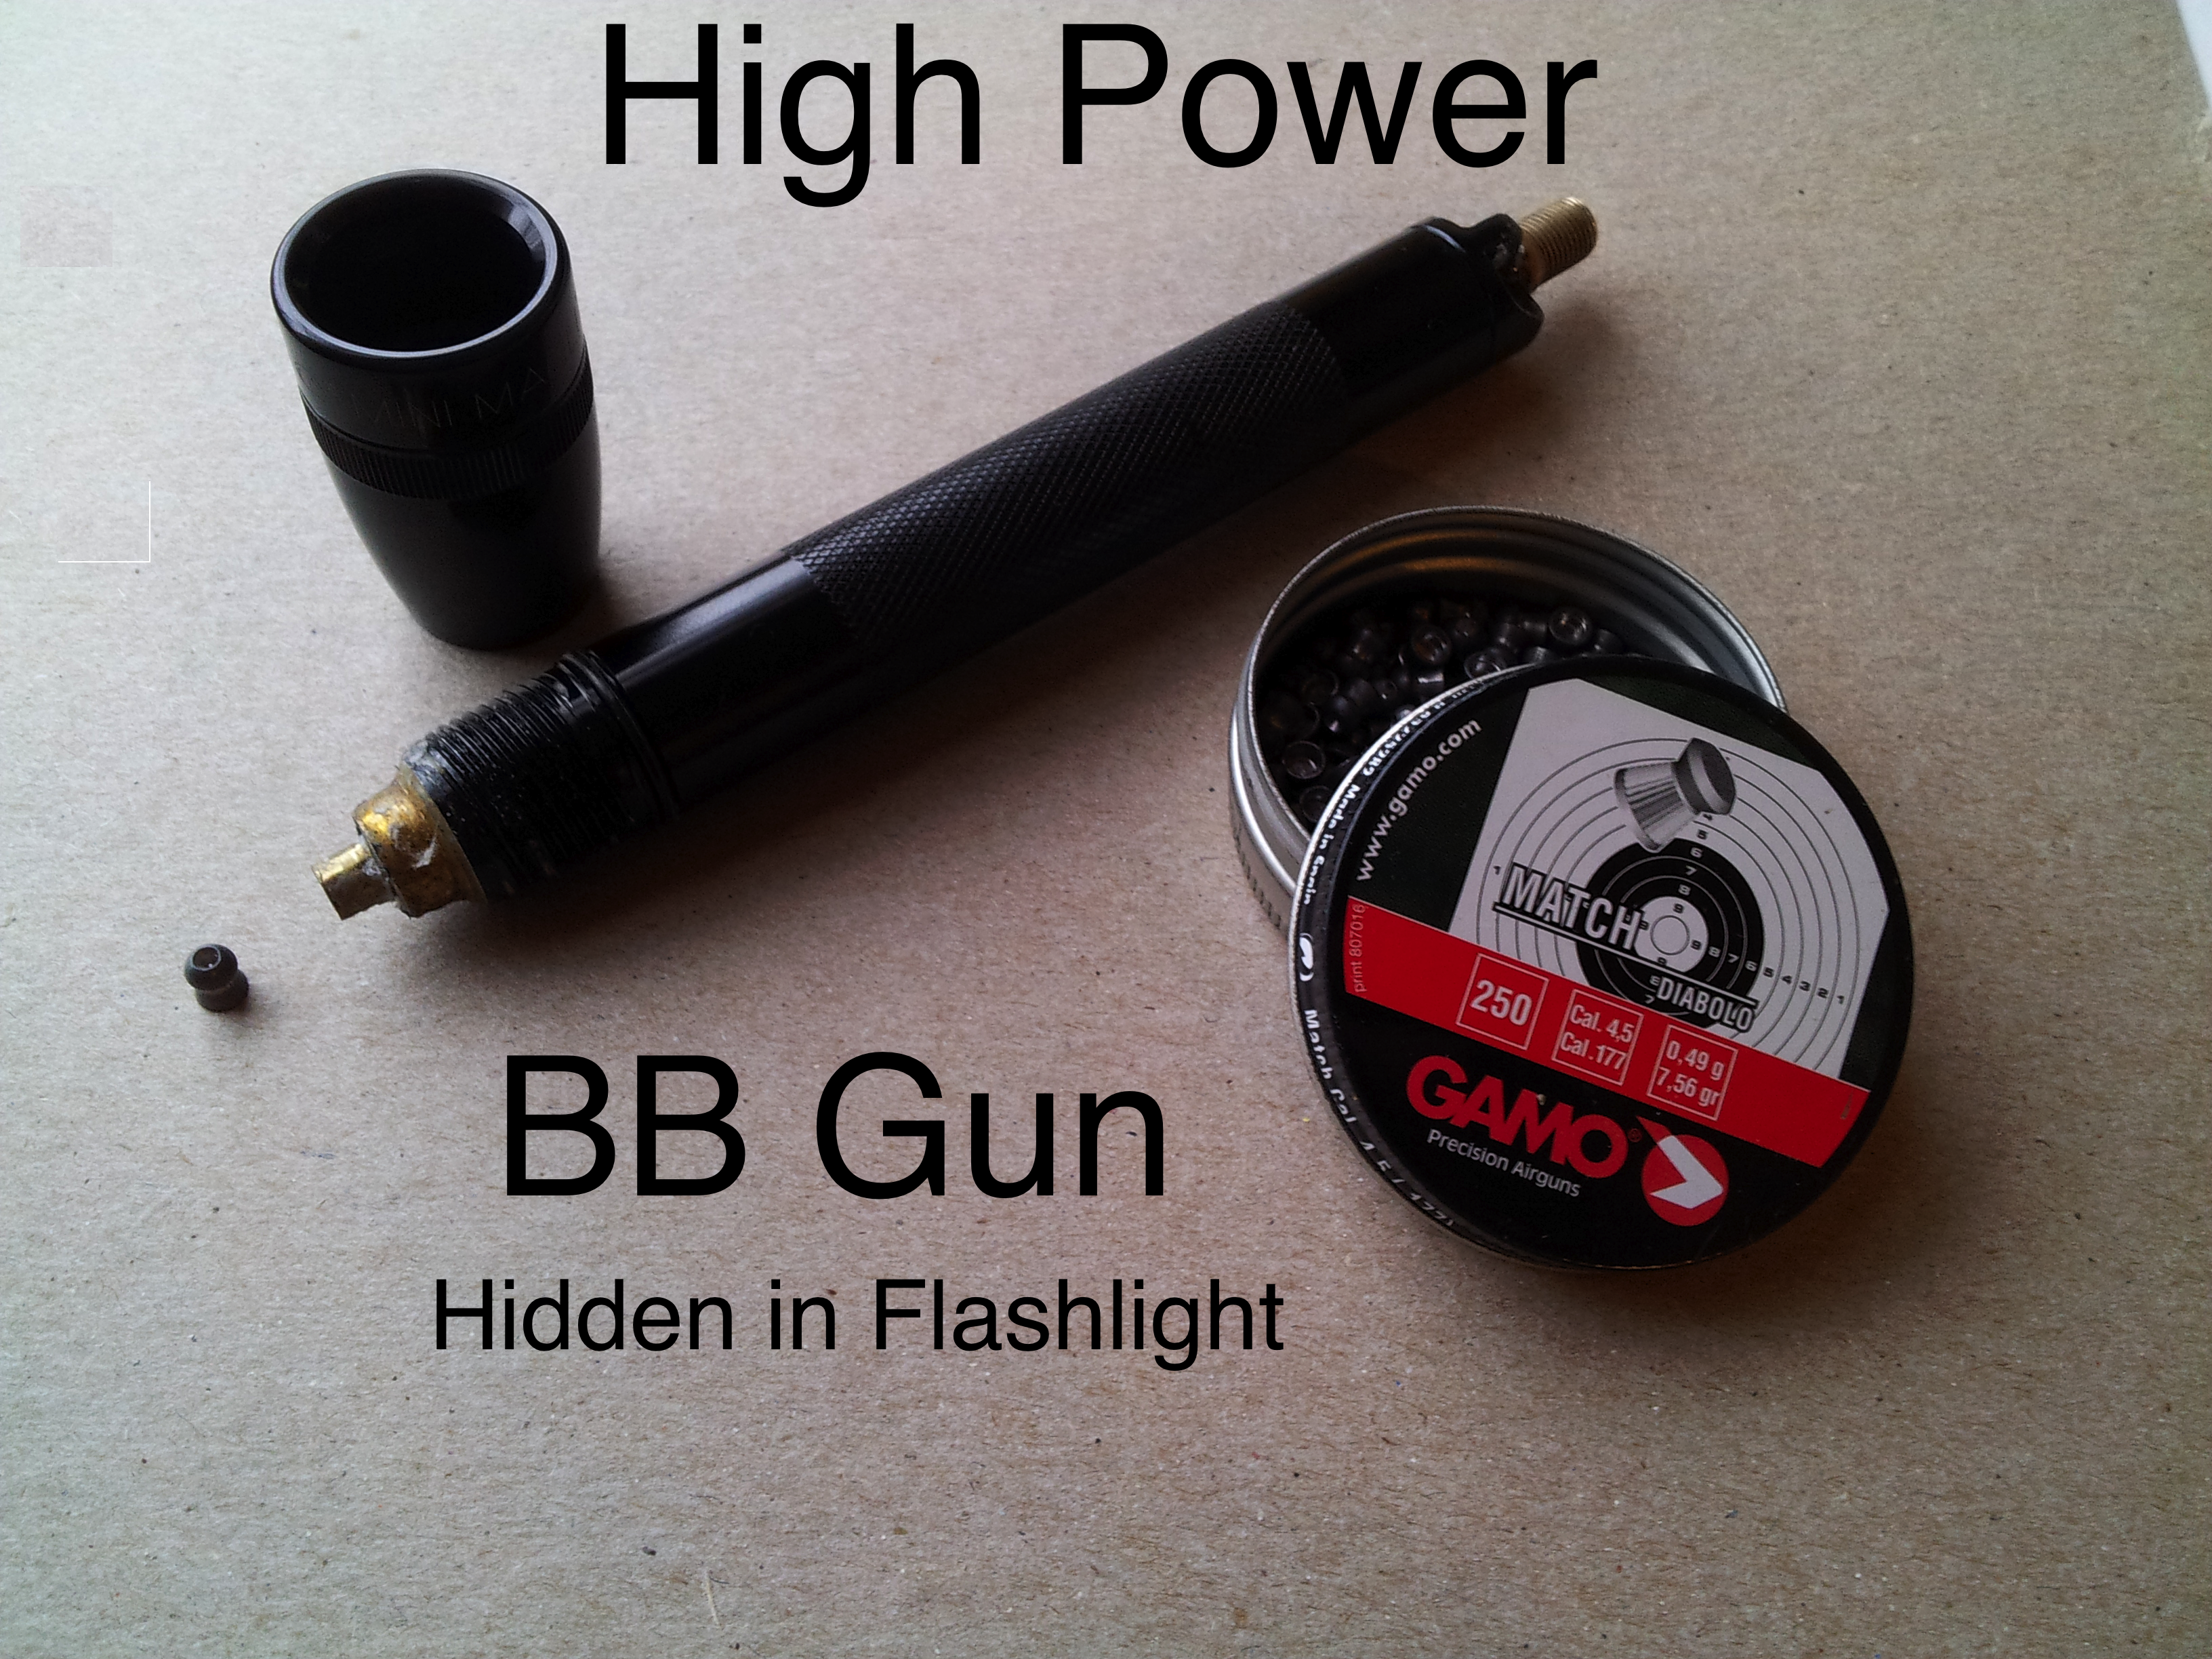 Flashlight Air Gun (Can break Sound Barrier)